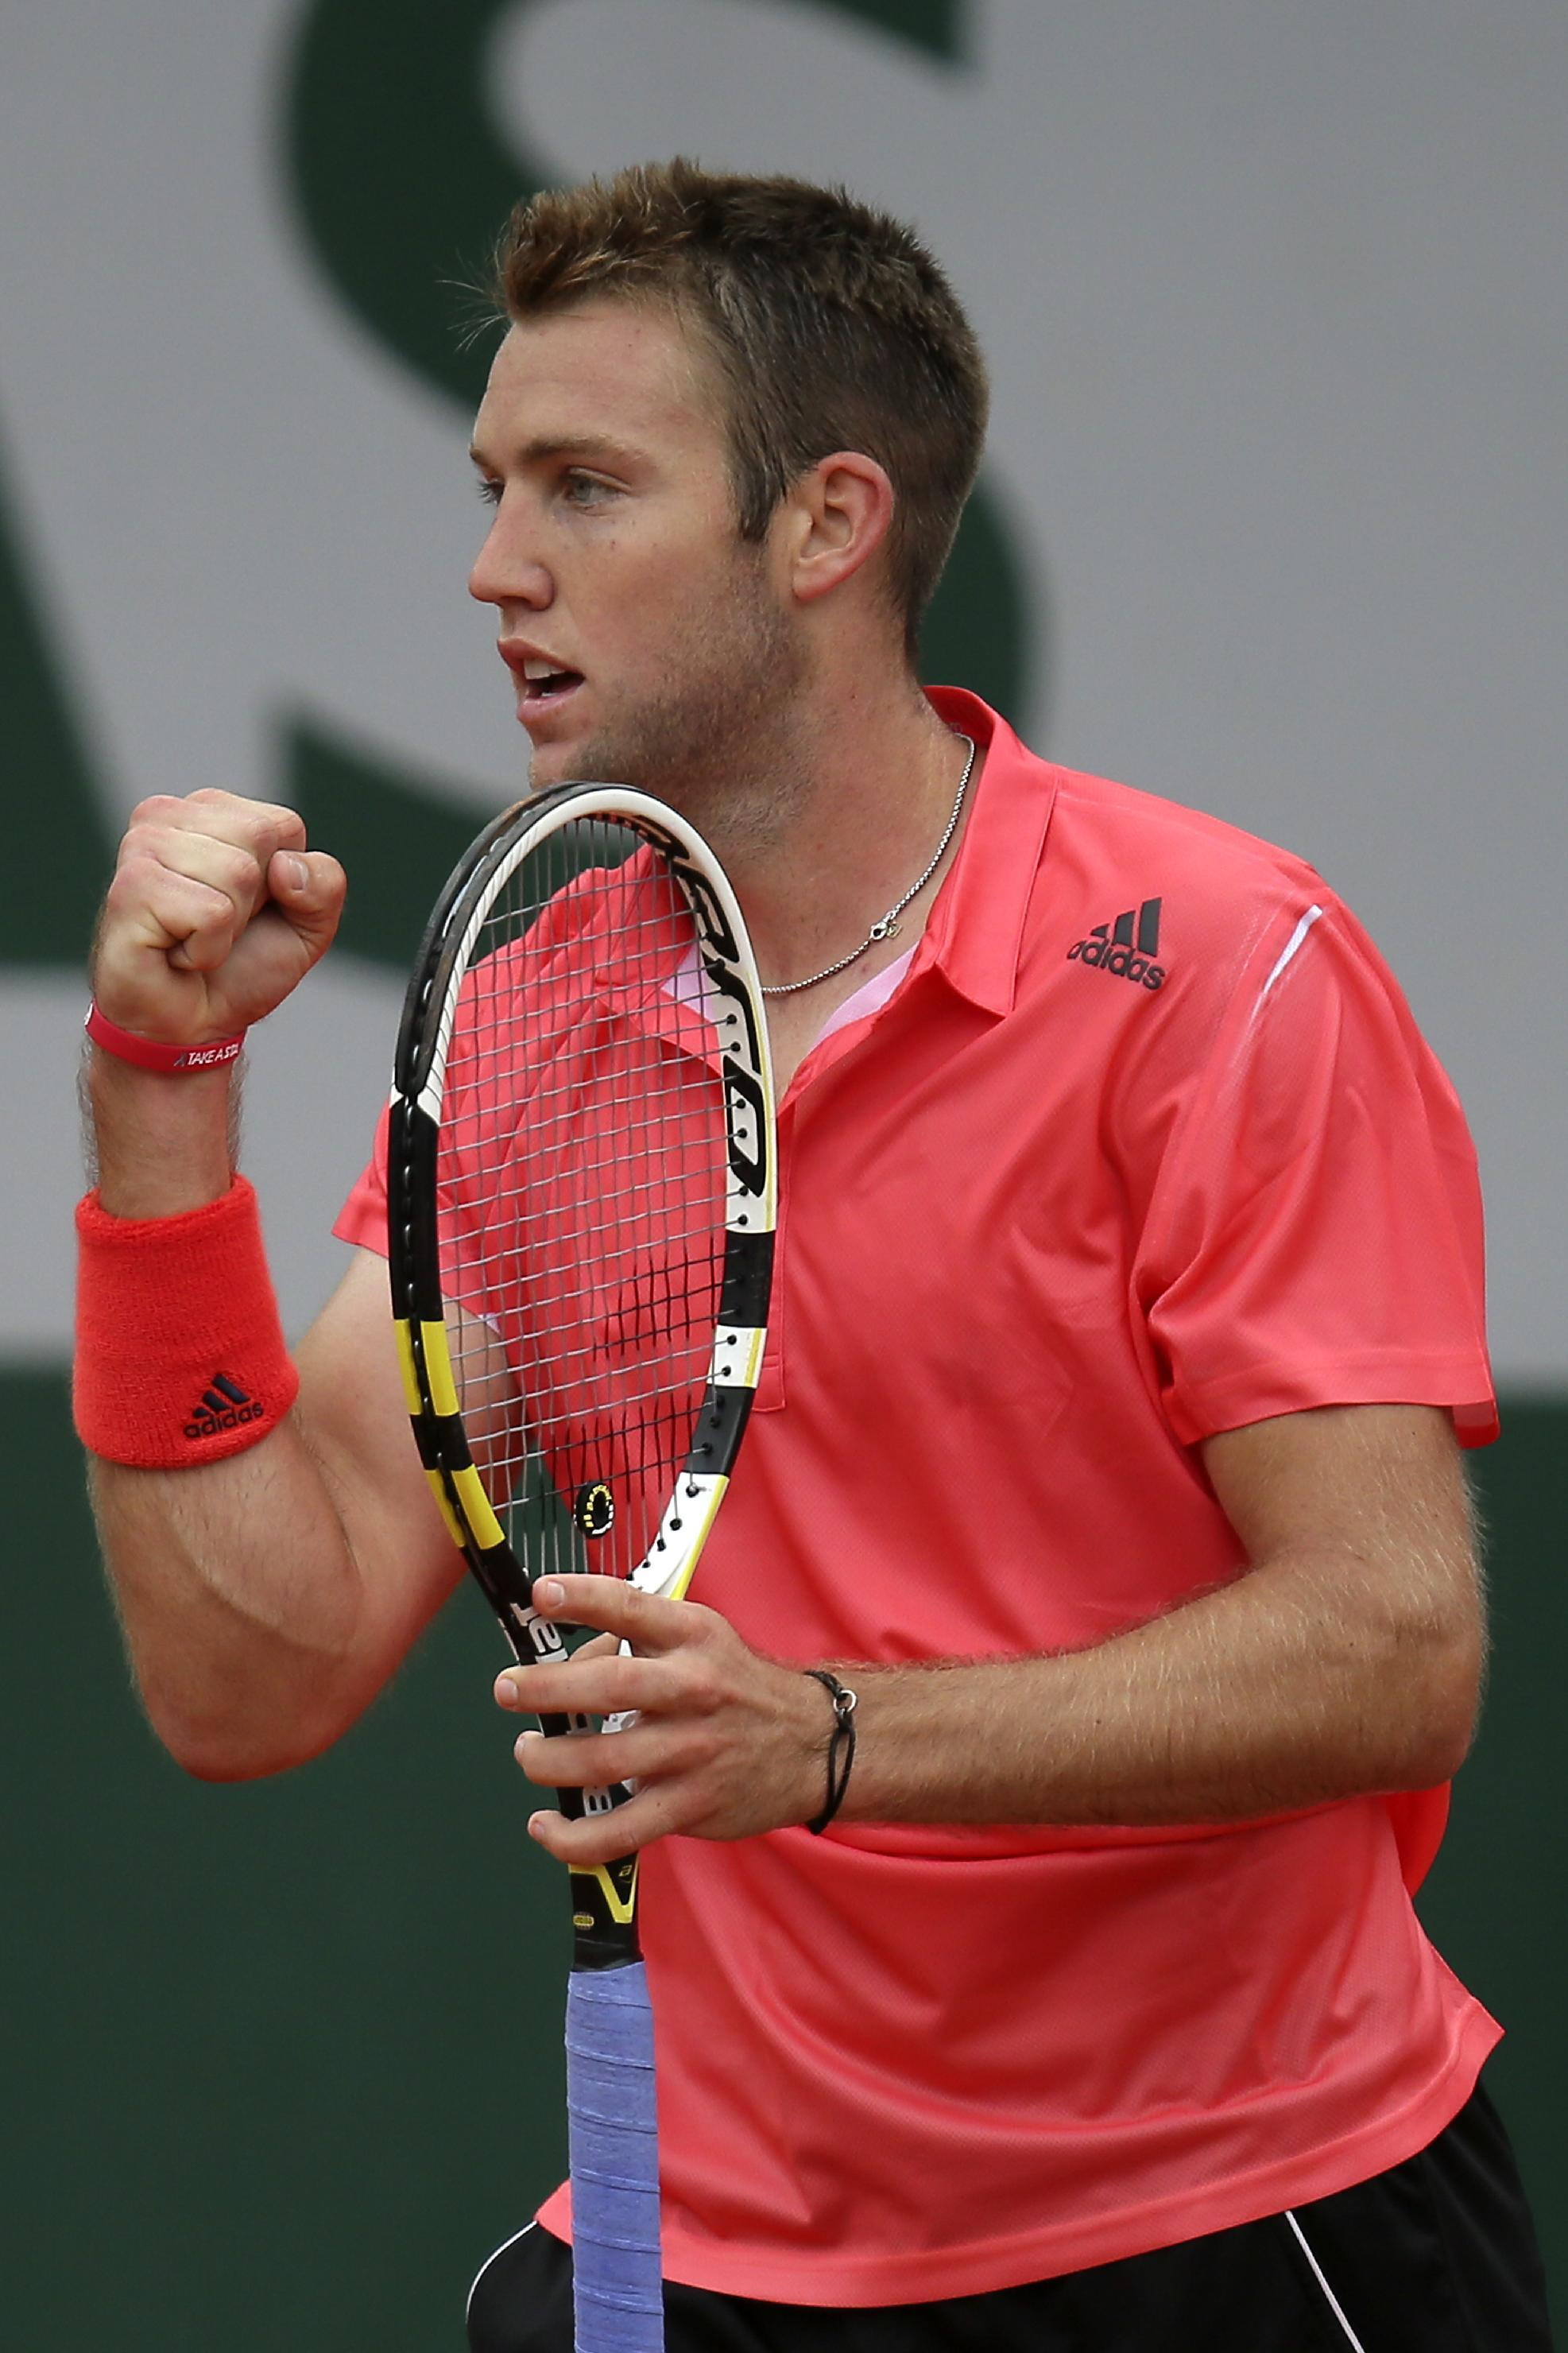 american sock ousts dimitrov on 39 favorite surface 39 in paris. Black Bedroom Furniture Sets. Home Design Ideas